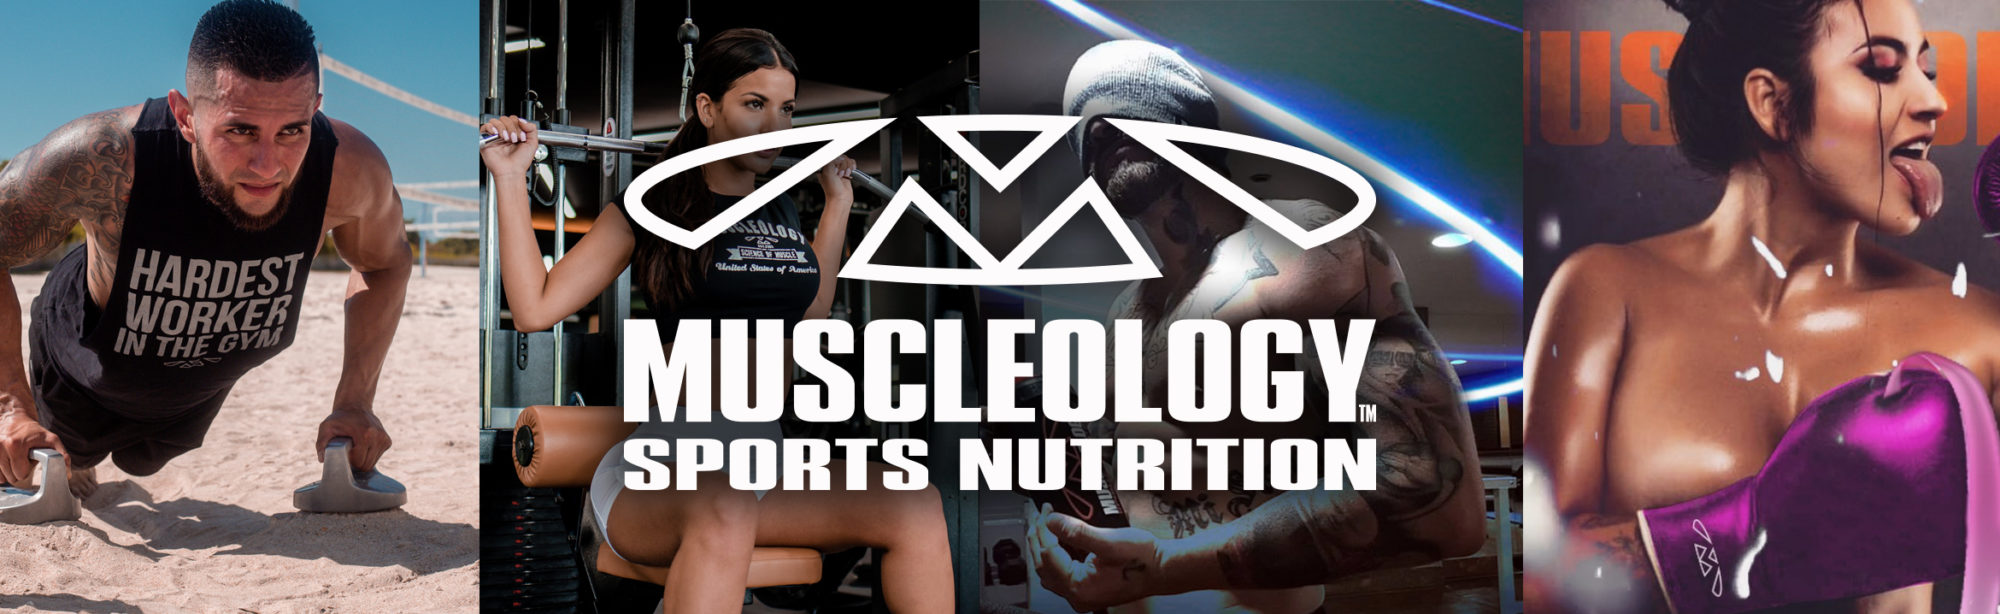 Muscleology Media Video Gallery